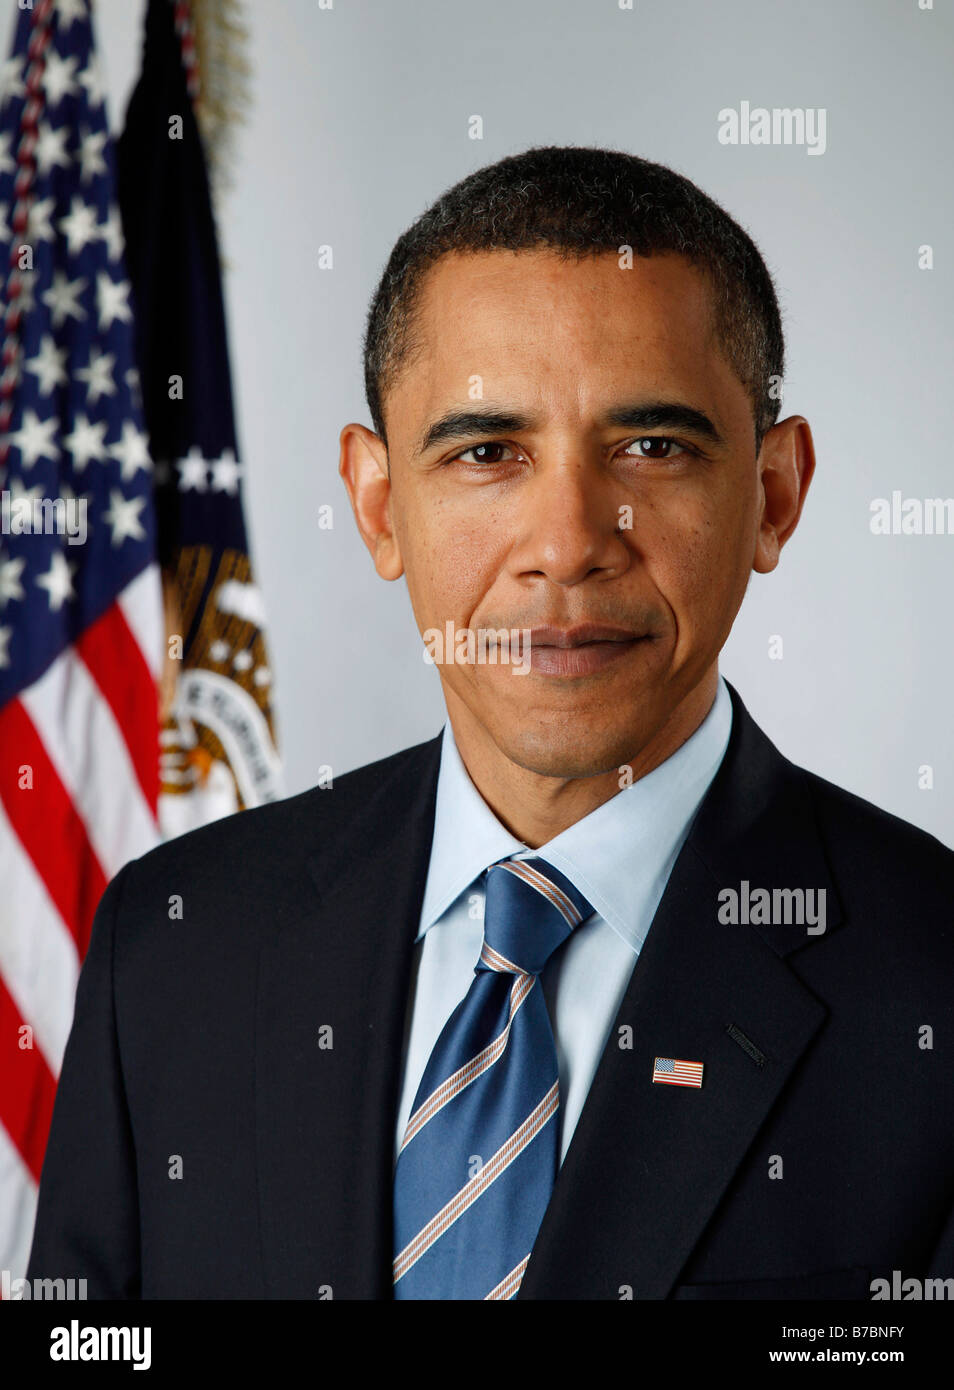 Official portrait of President Barack Obama on Jan 13 2009 - Stock Image